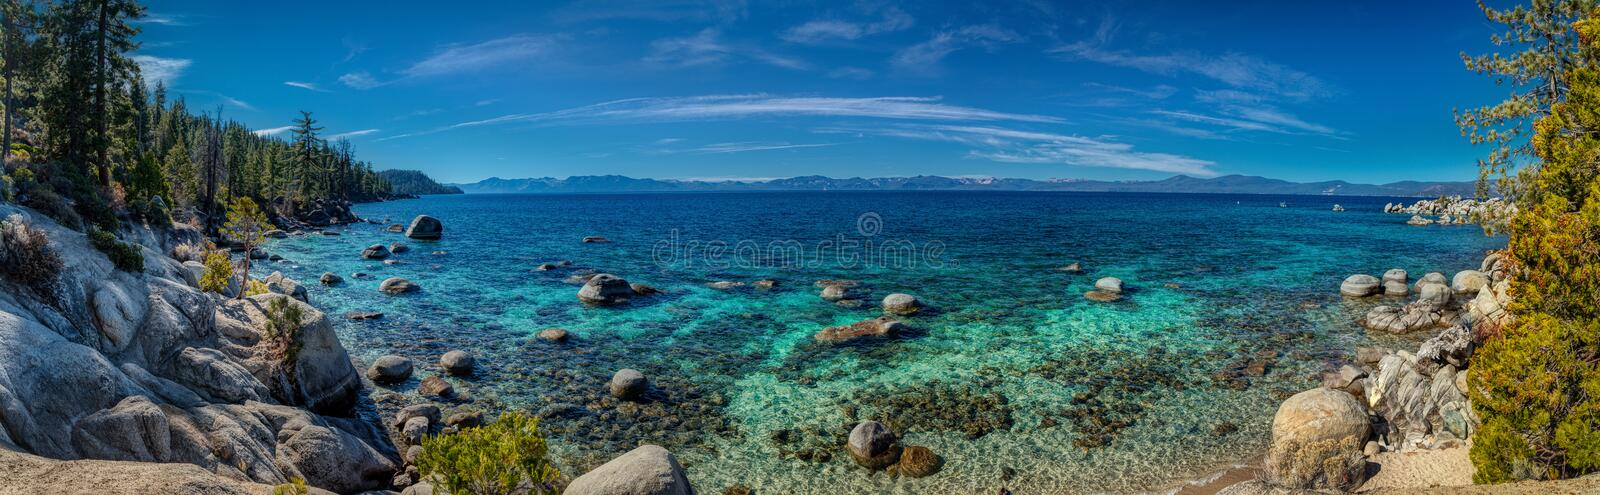 Deep Blue and Turquoise Water at Lake Tahoe Panorama. Unique boulders and colorful blue and turquoise water near Chimney Beach, Lake Tahoe, Carson City, Nevada stock photo